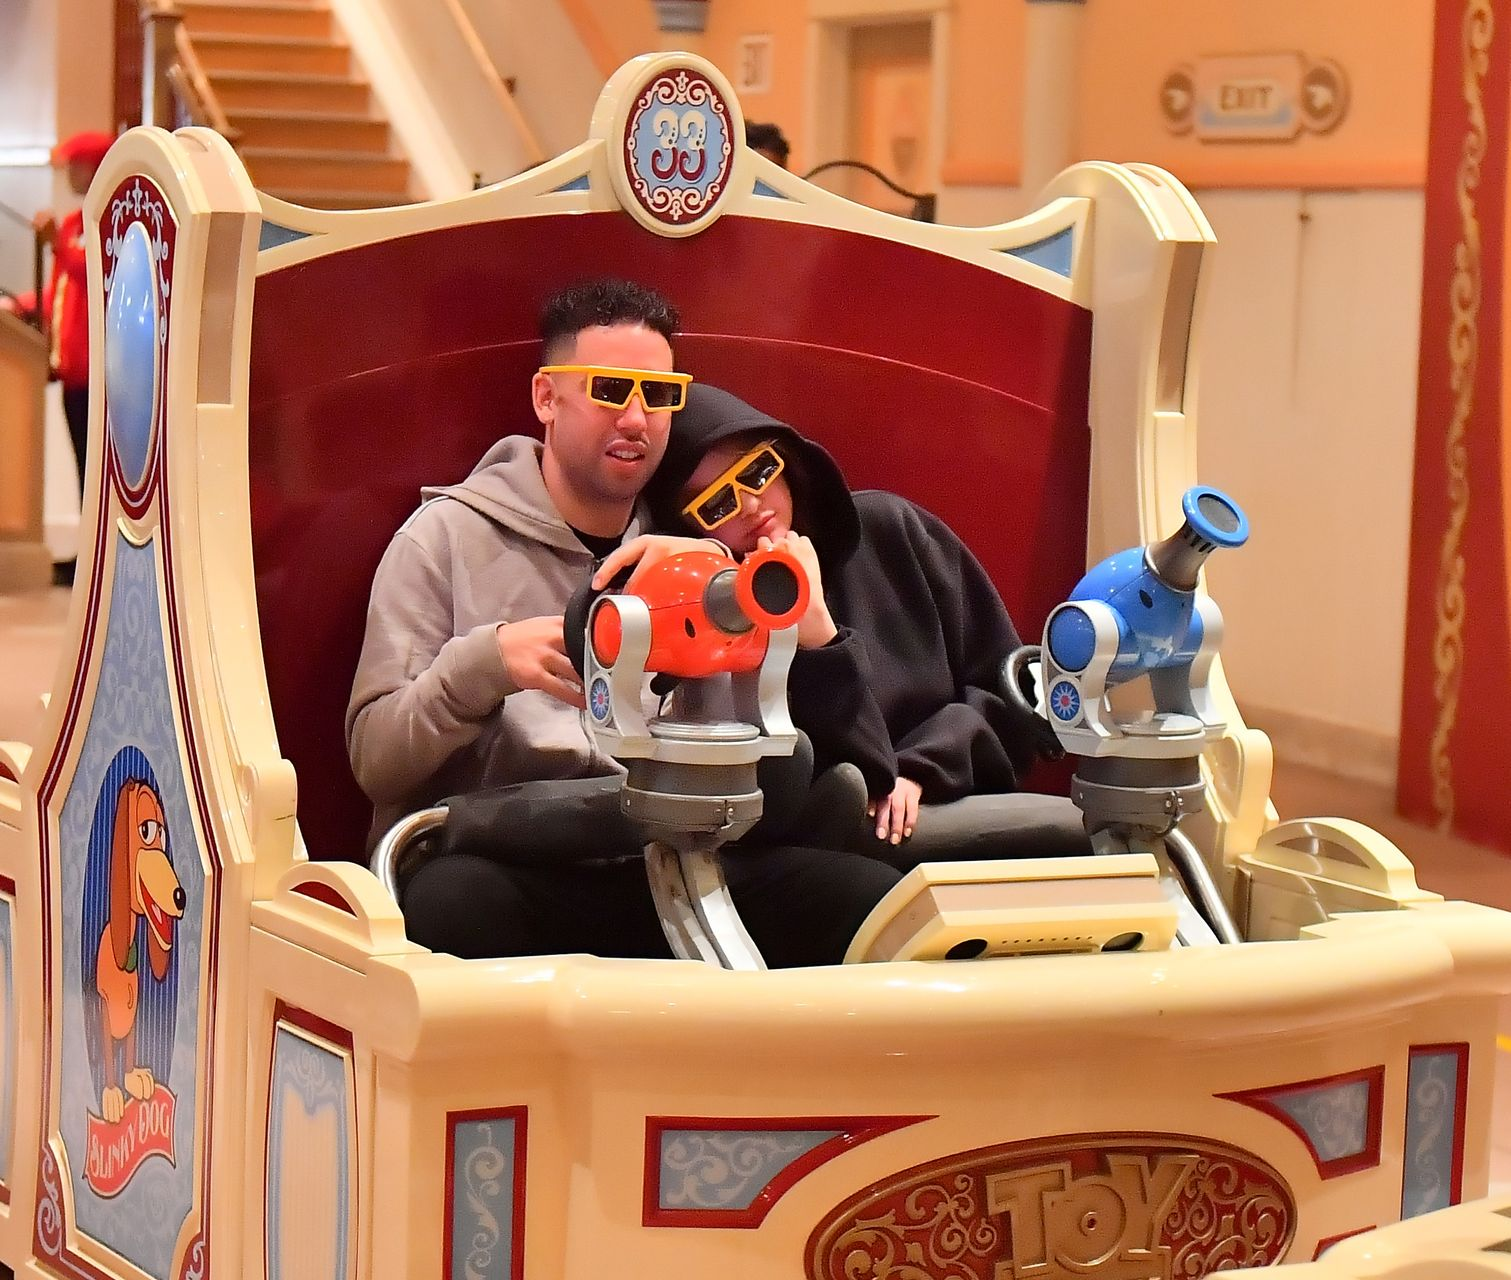 EXCLUSIVE: **WEB EMBARGO 1:30 pm EST 7th May 2019** Selena Gomez looks happy as she enjoys a night out at Disneyland with friends